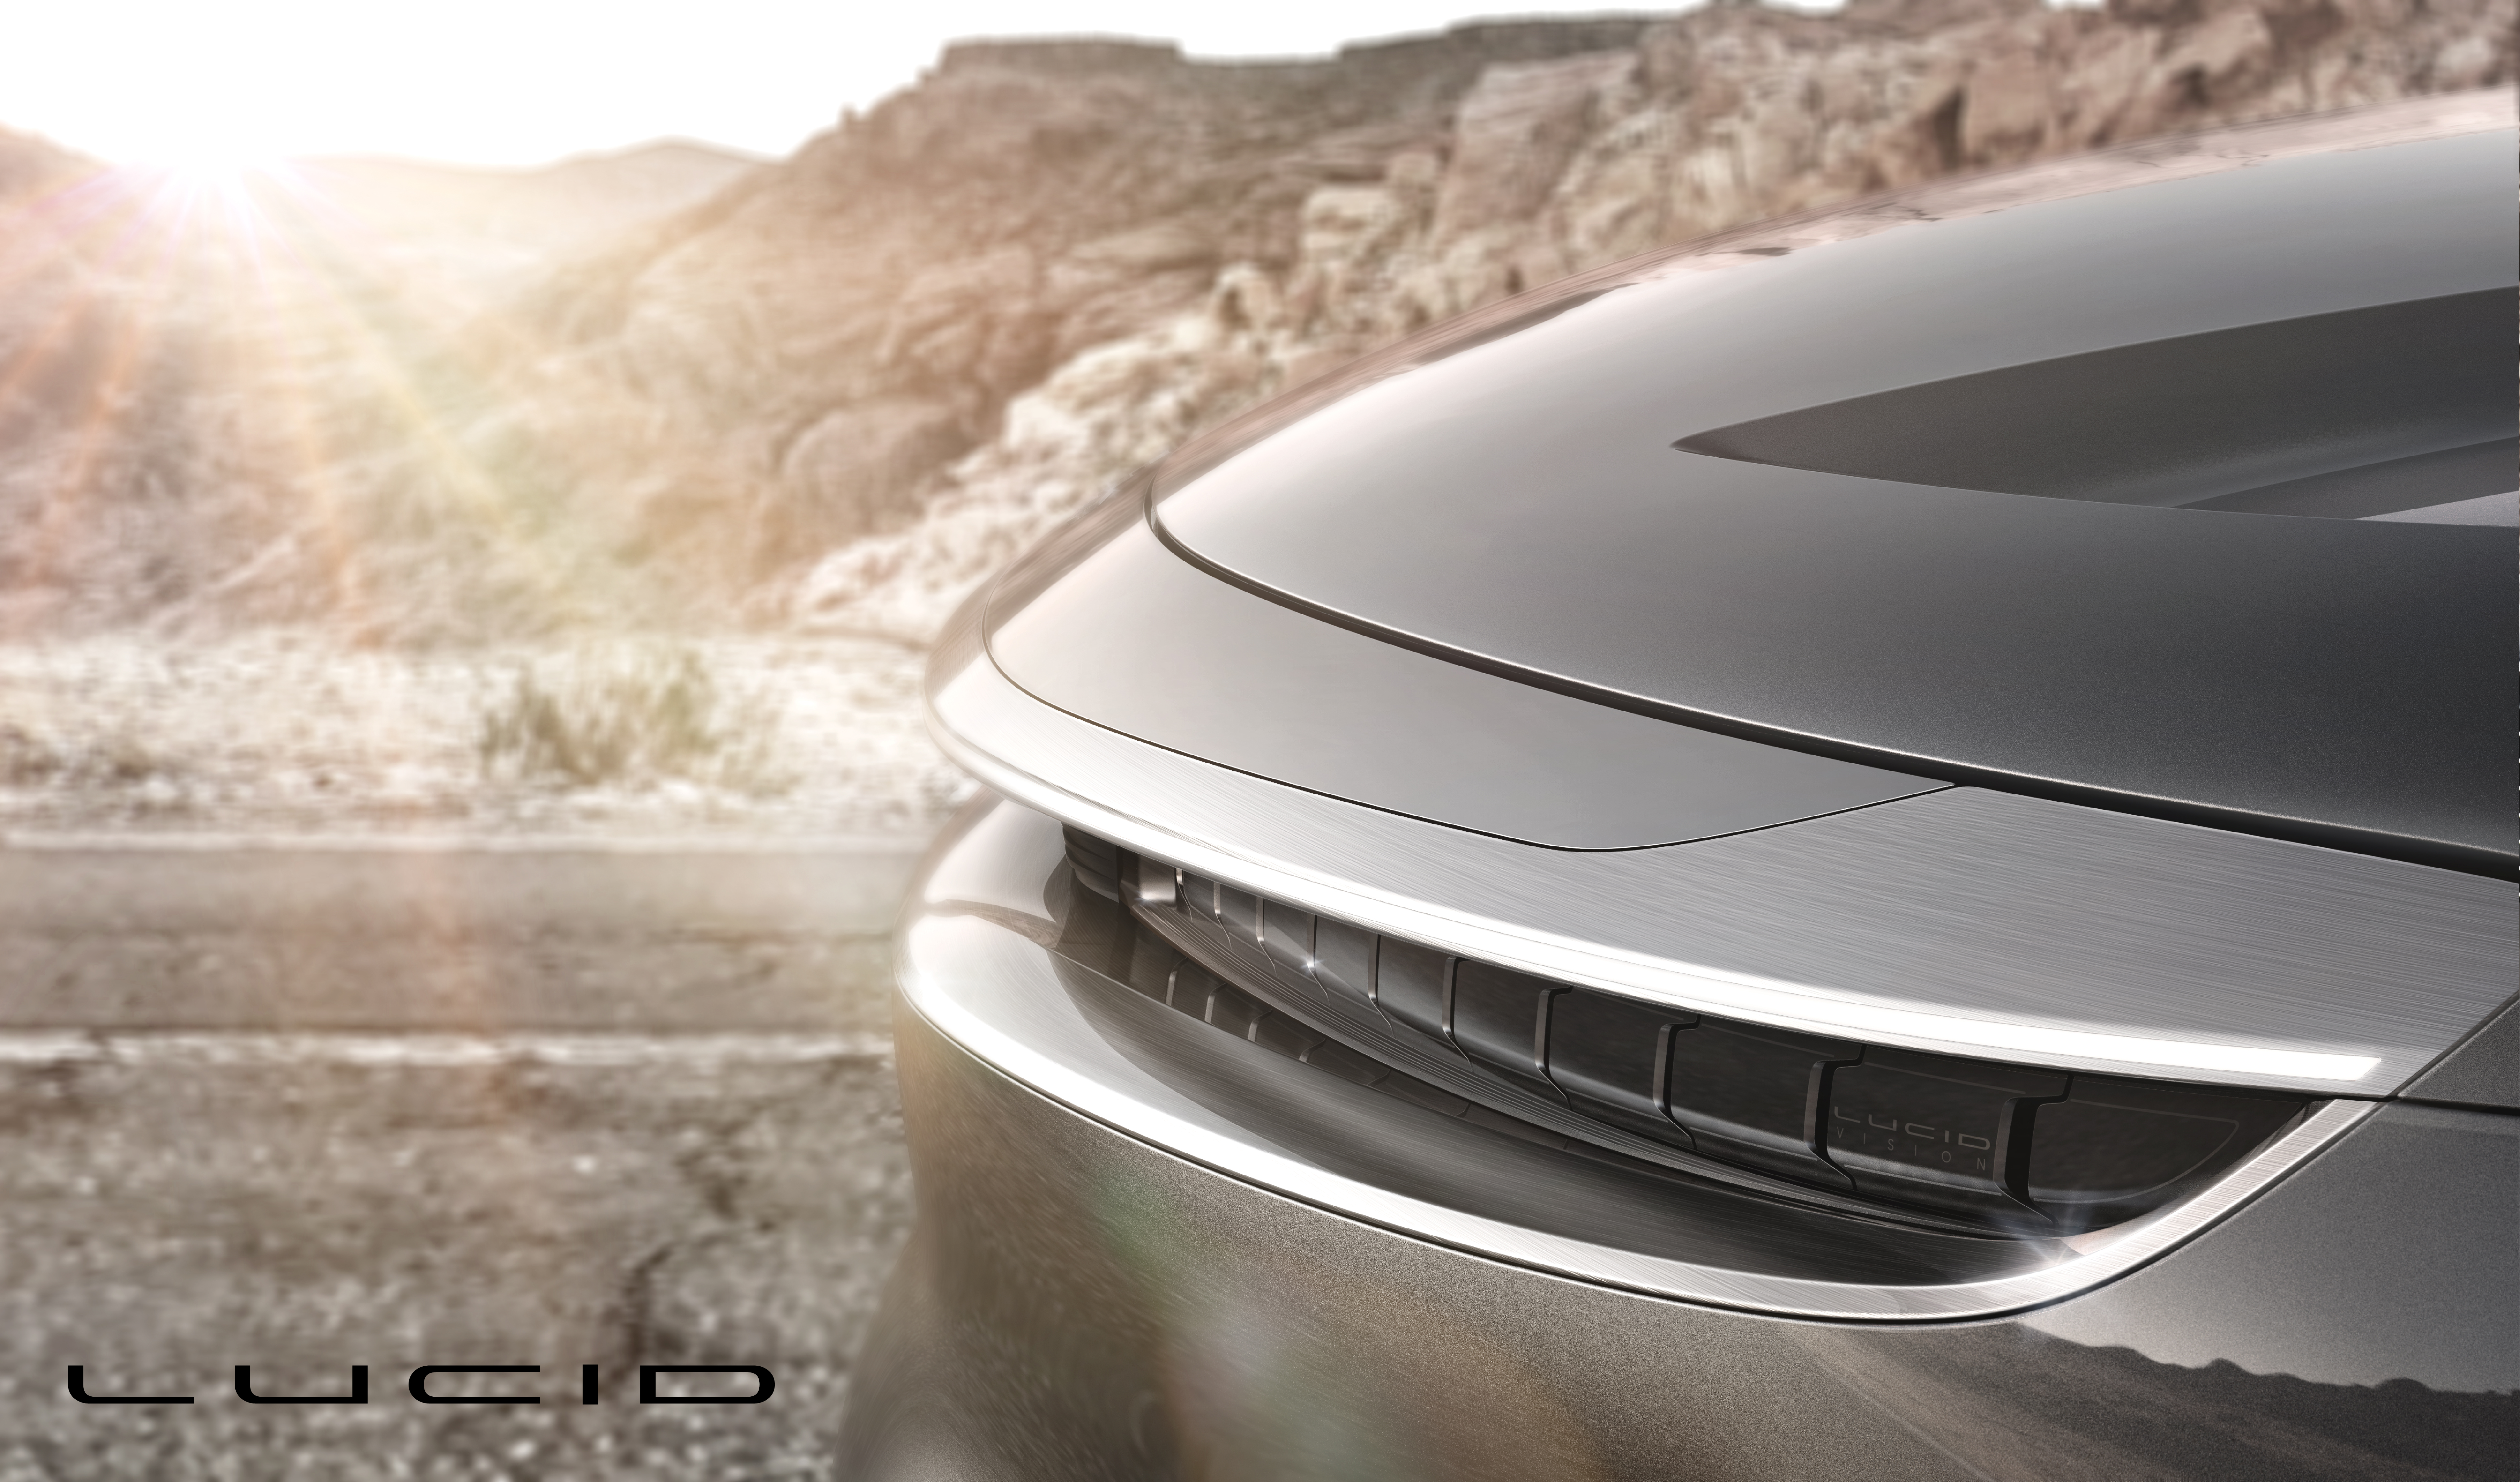 Lucid Motors plans to produce a 1,000 horsepower electric car by 2018.